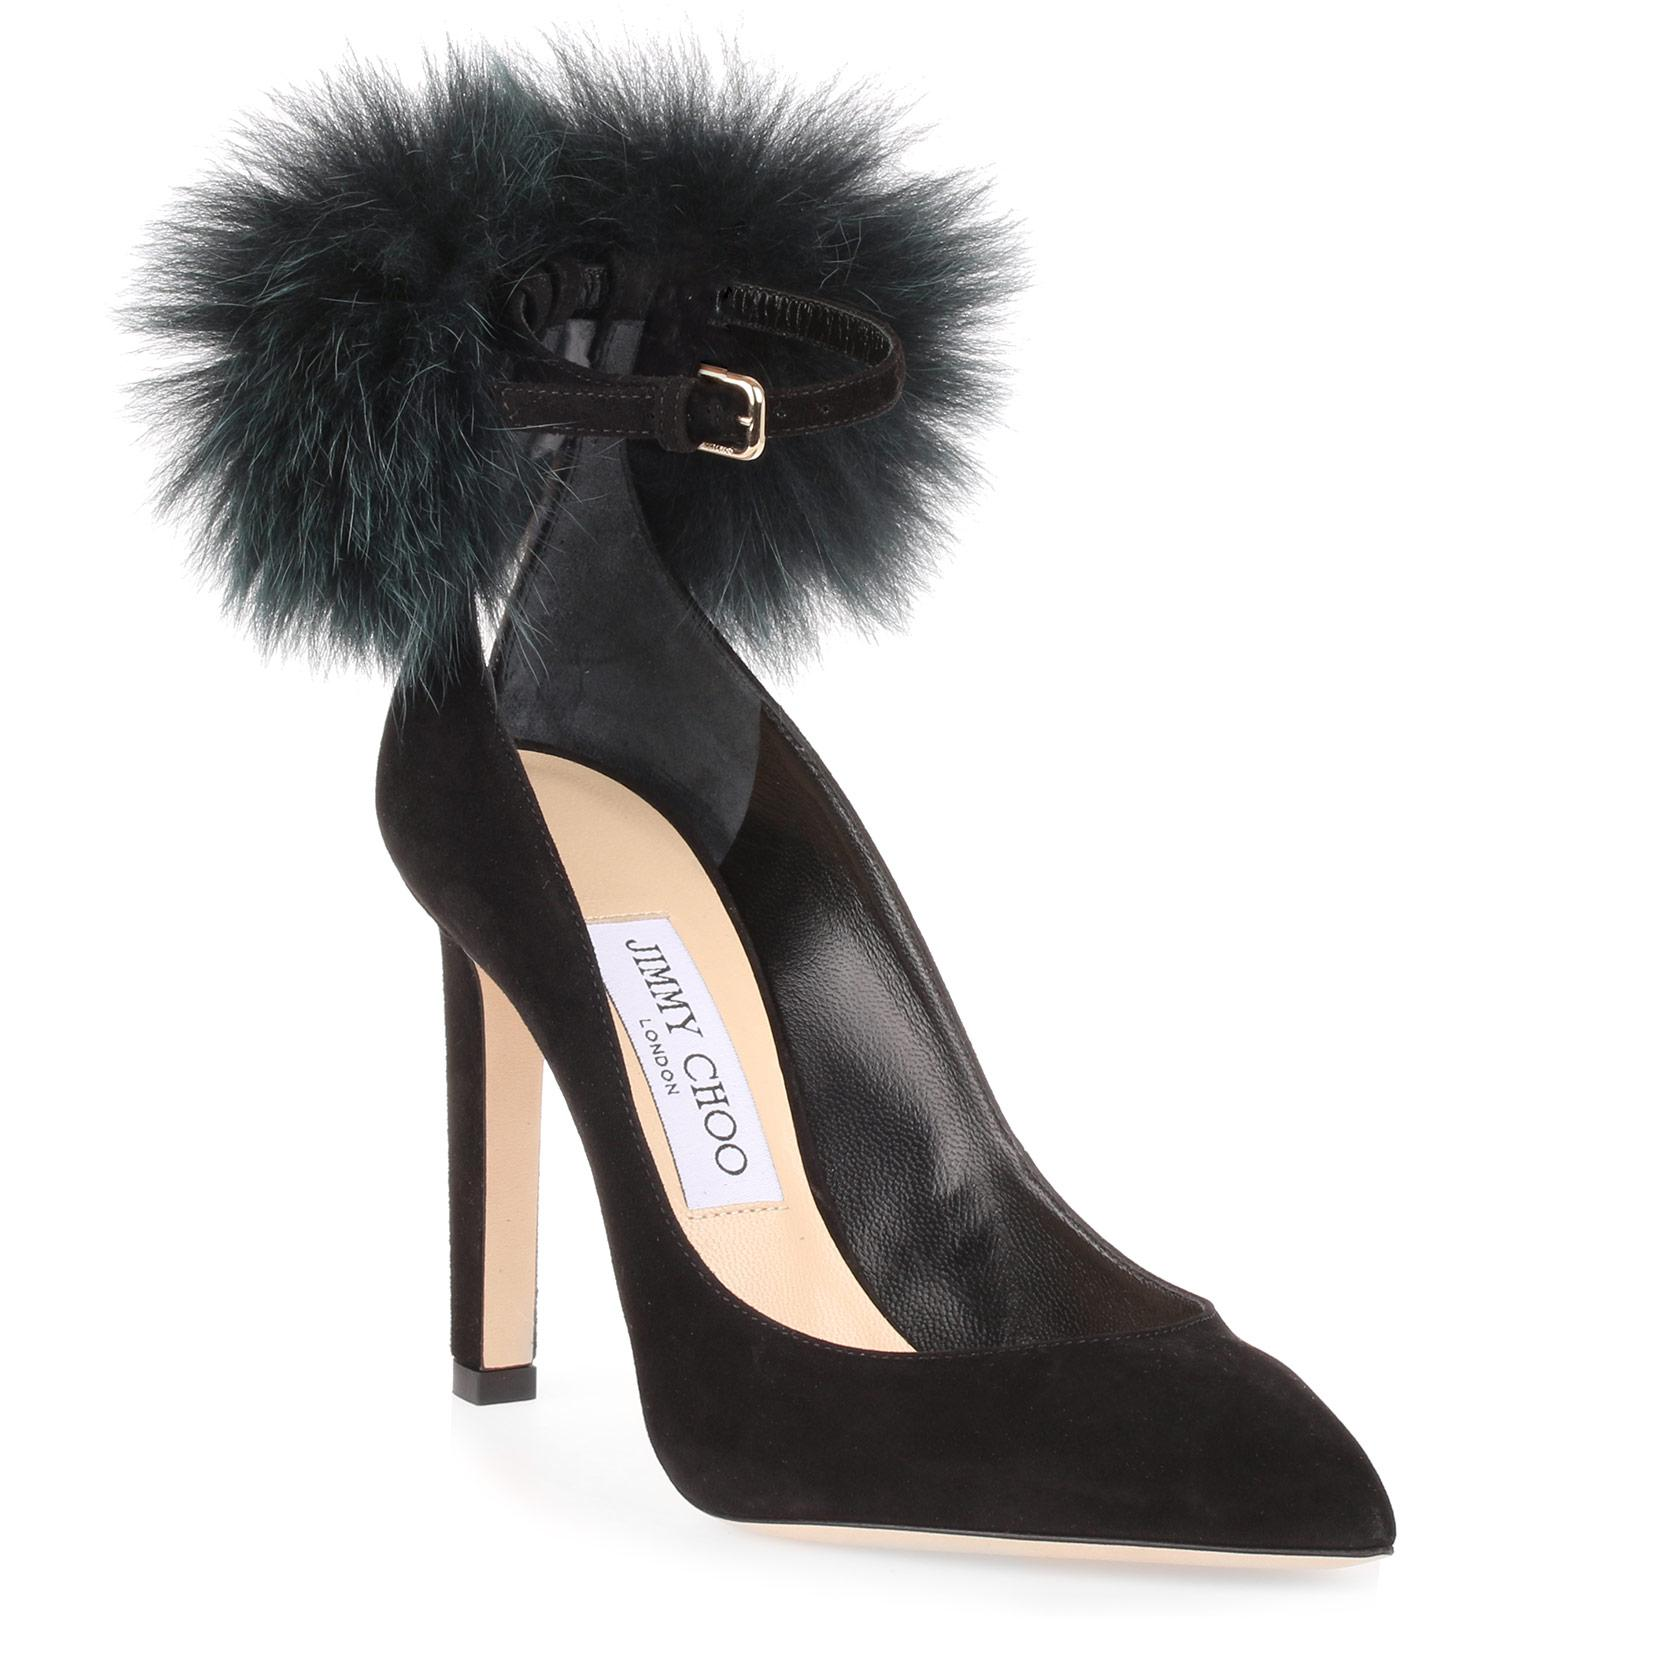 bcf9eb533cd9 Jimmy Choo South 100 Black Suede Pom-Pom Pump. Savannahs